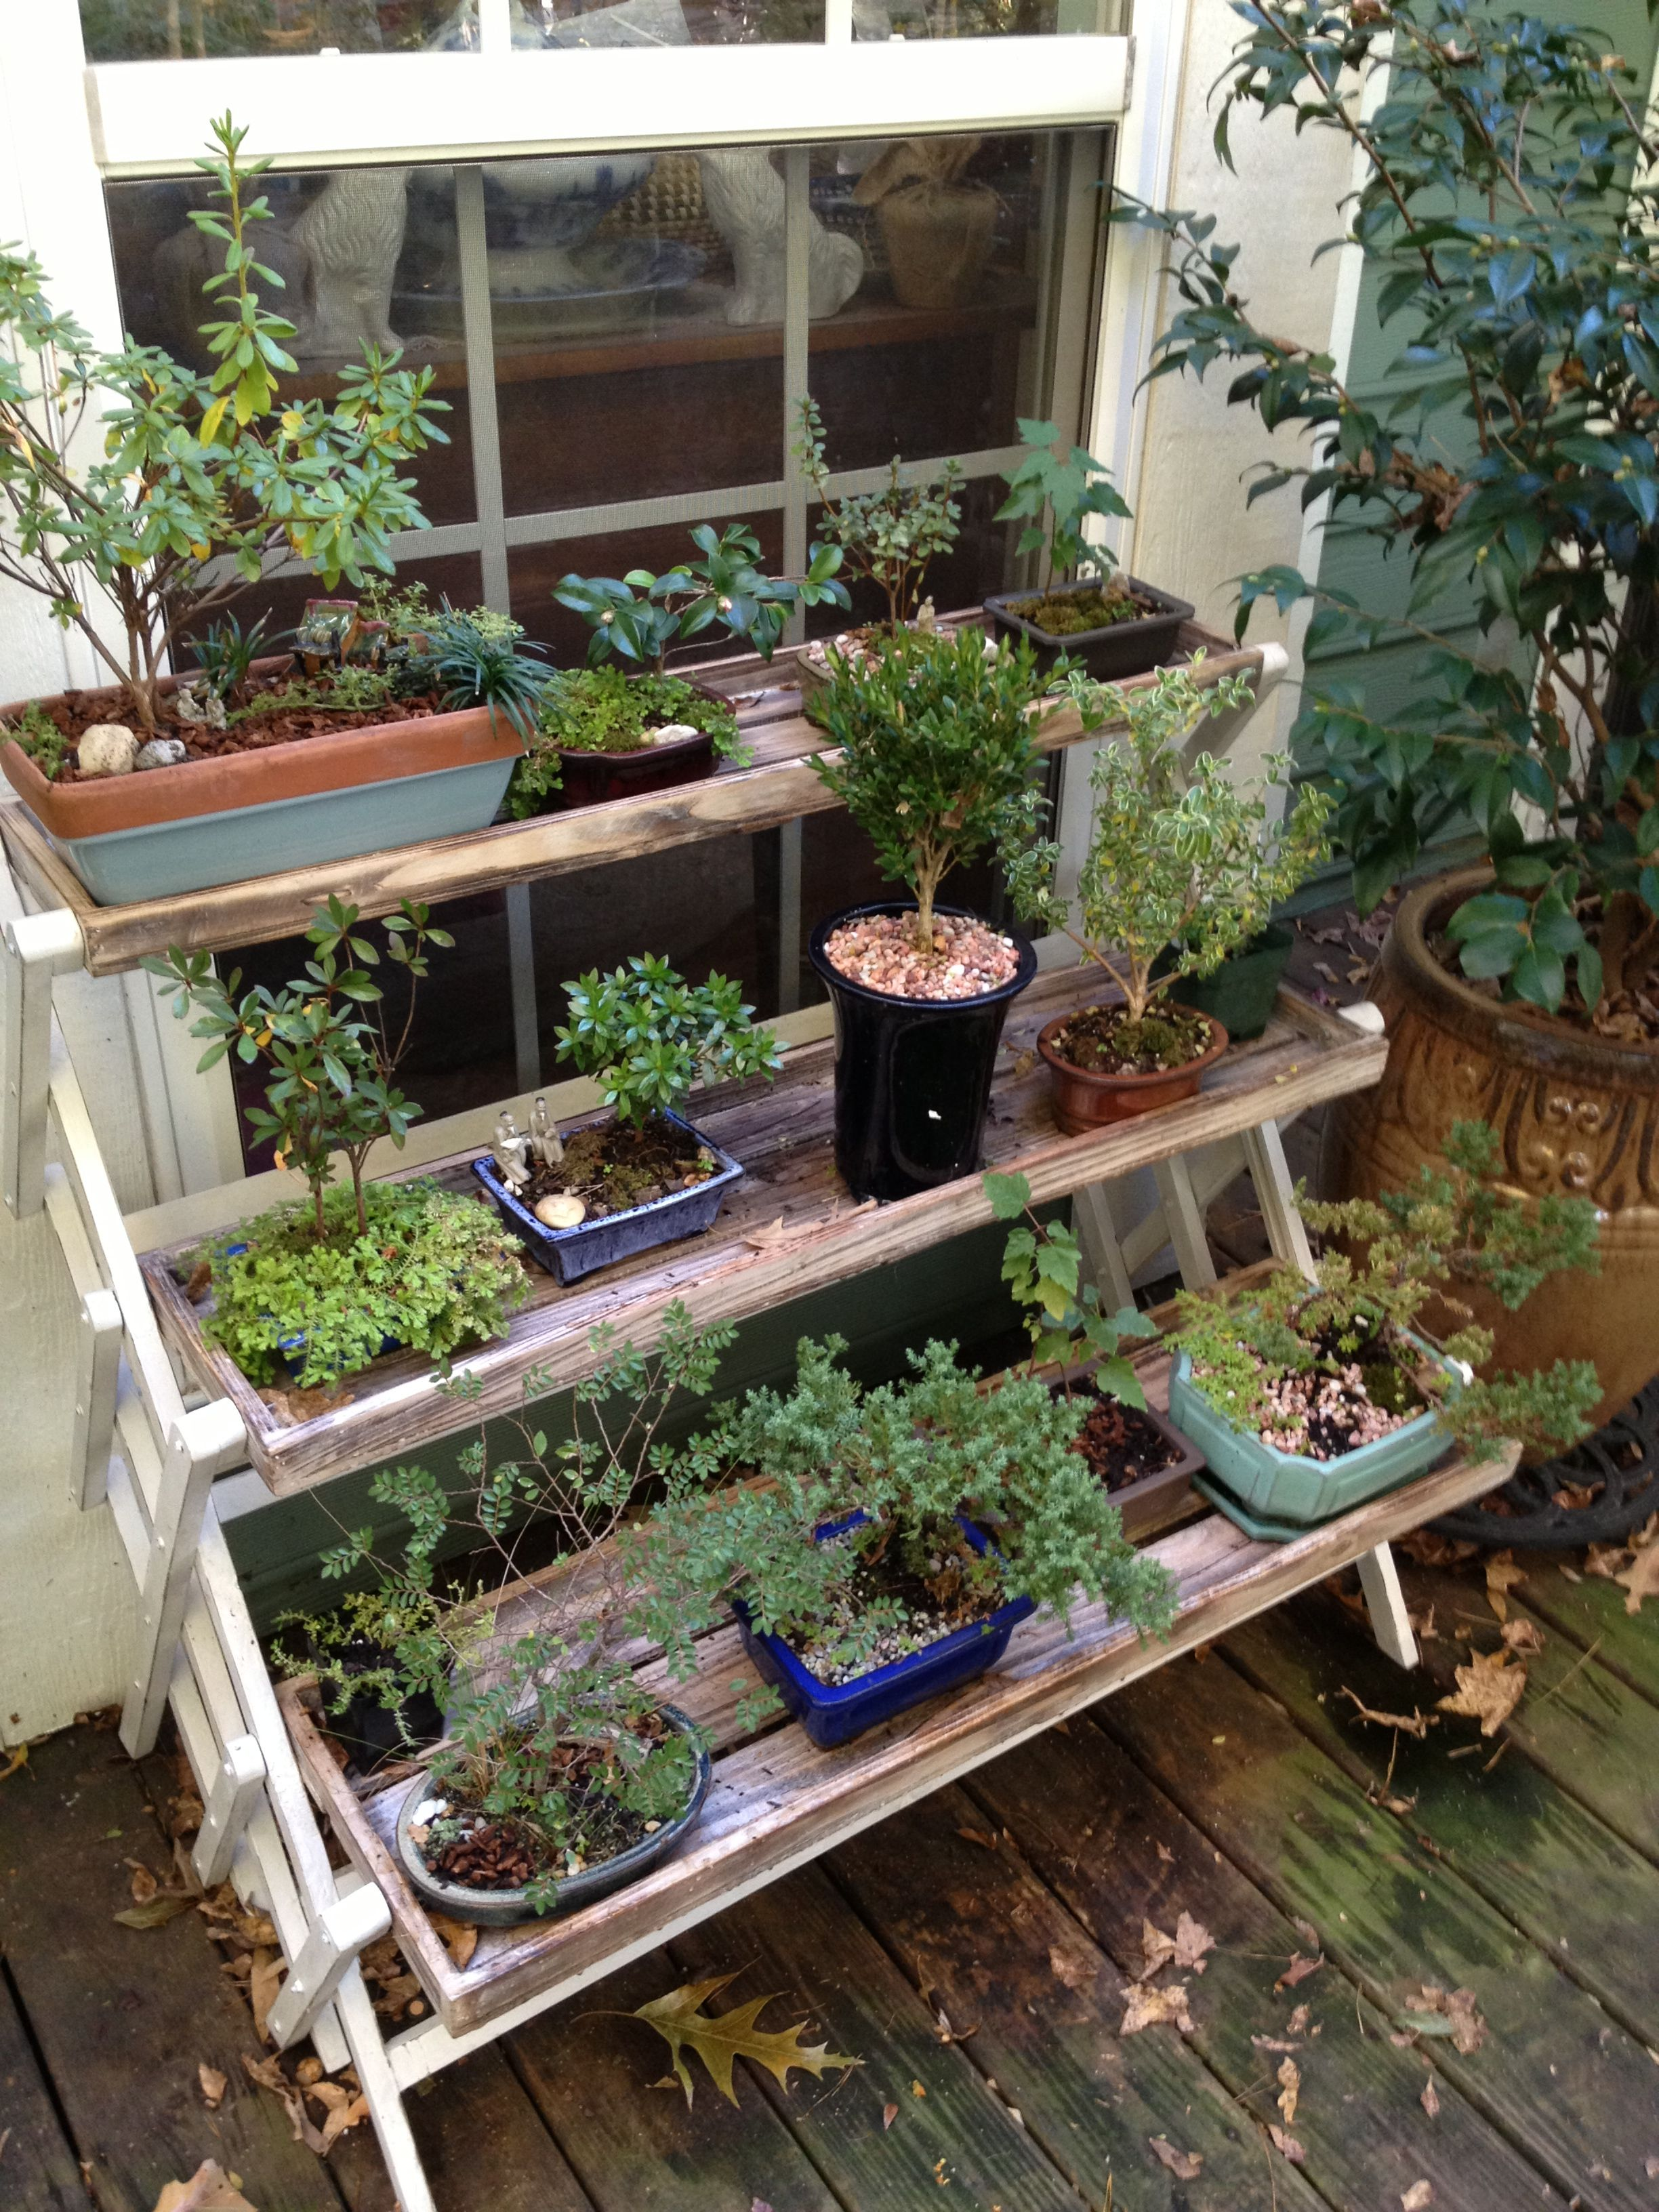 Some of my bonsai collection.